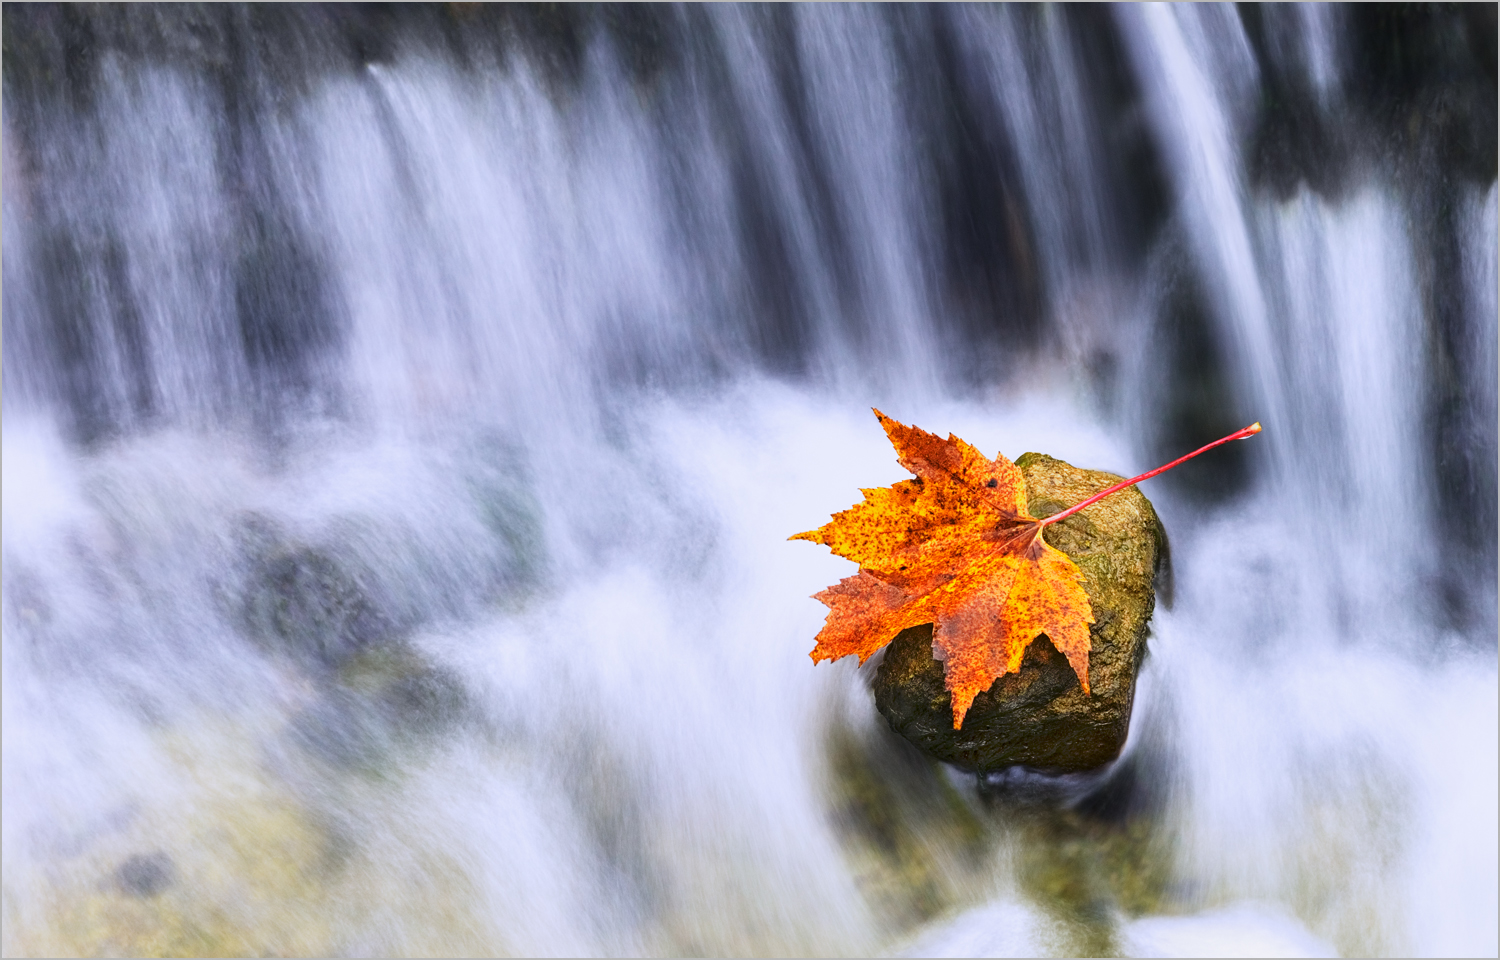 An autumn leaf at AuTrain Falls in Michigan's Upper Peninsula.